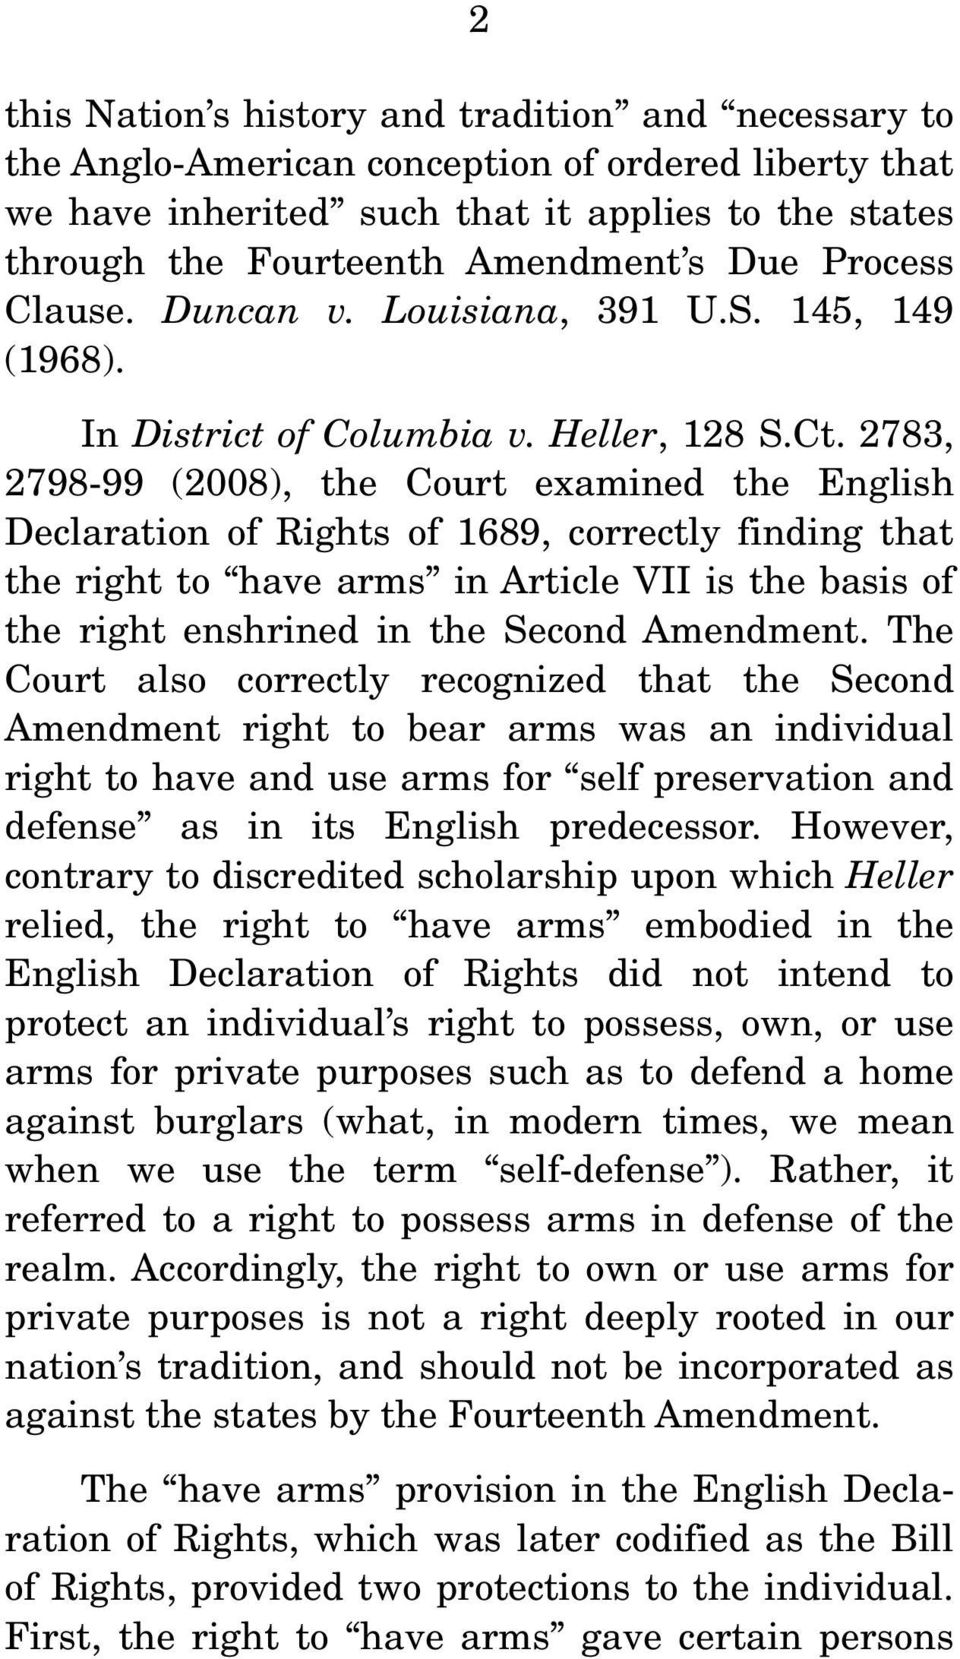 2783, 2798-99 (2008), the Court examined the English Declaration of Rights of 1689, correctly finding that the right to have arms in Article VII is the basis of the right enshrined in the Second